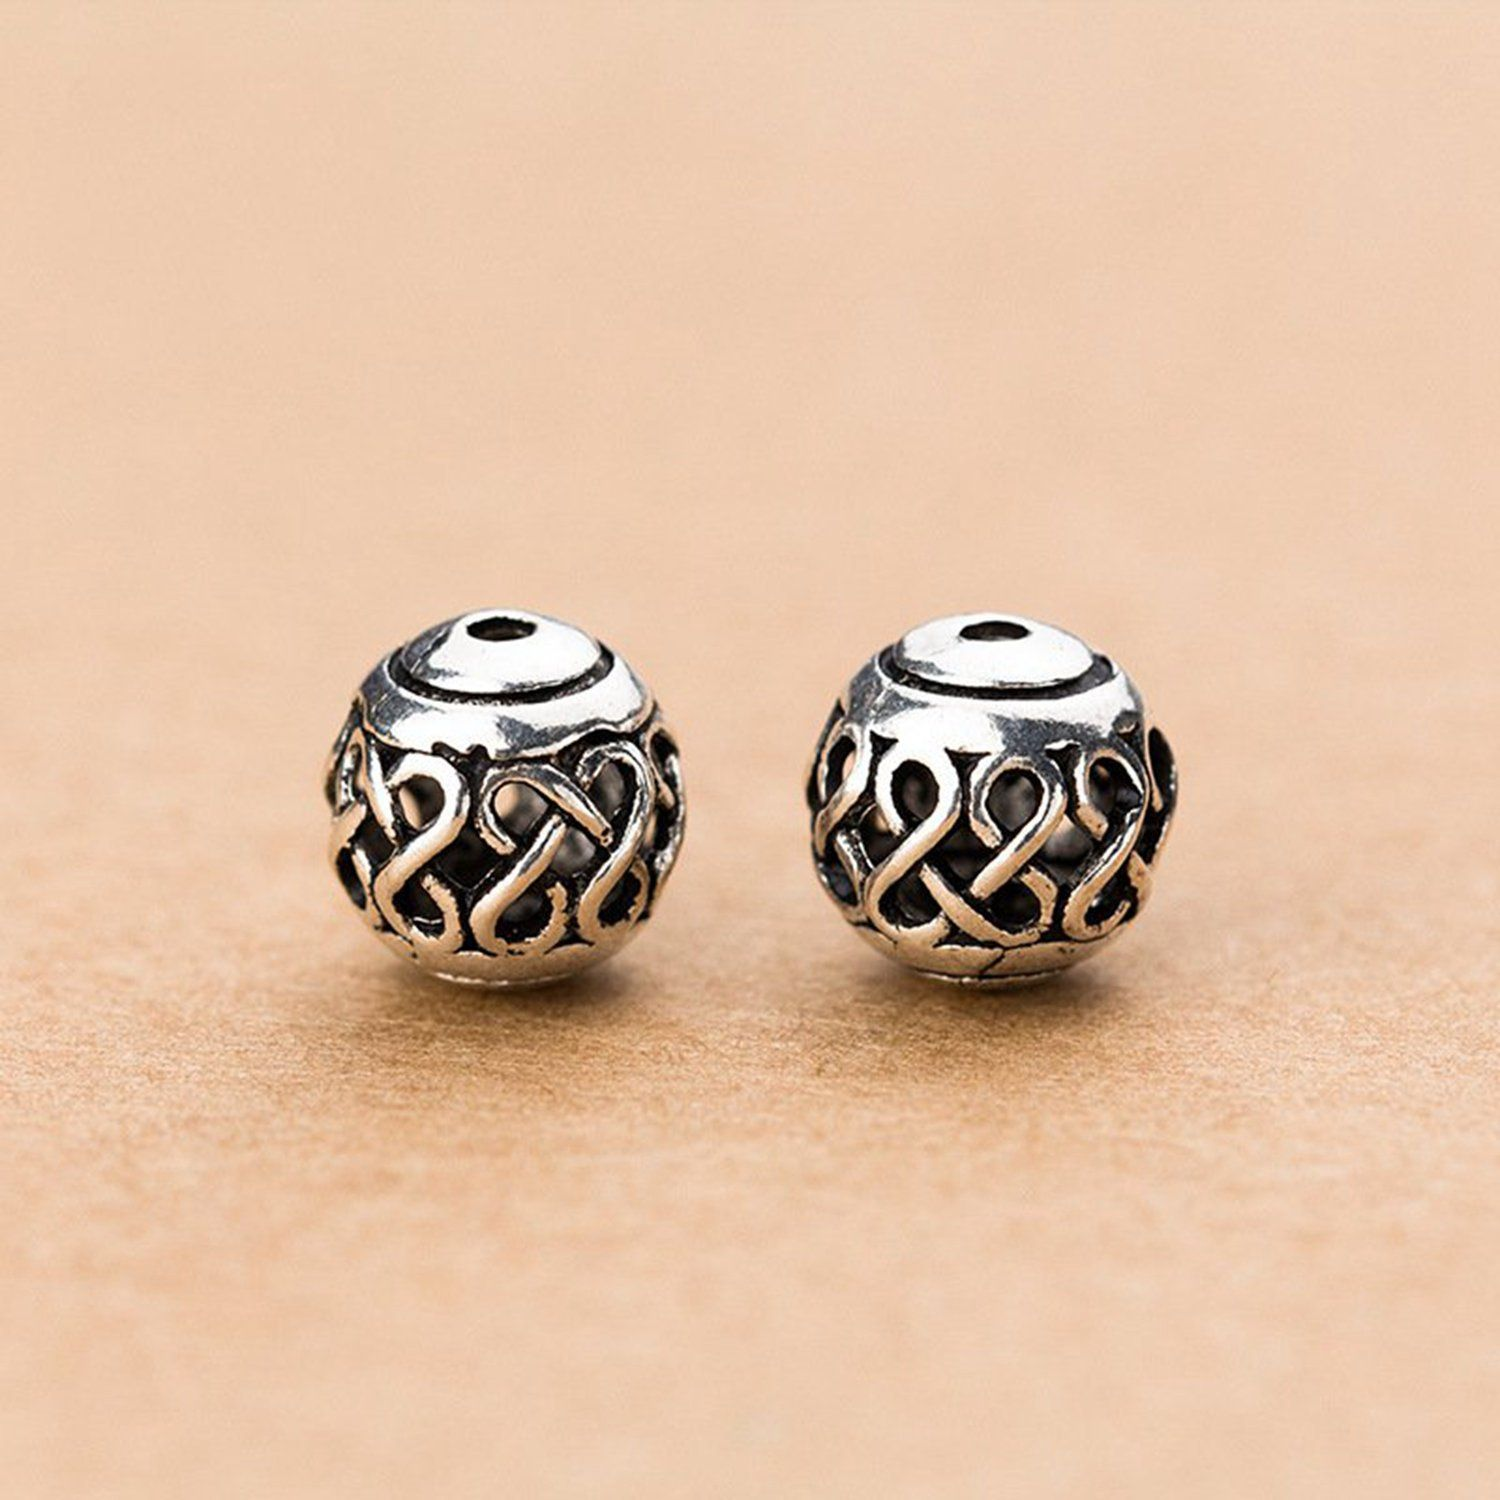 26++ Sterling silver beads jewelry supply ideas in 2021